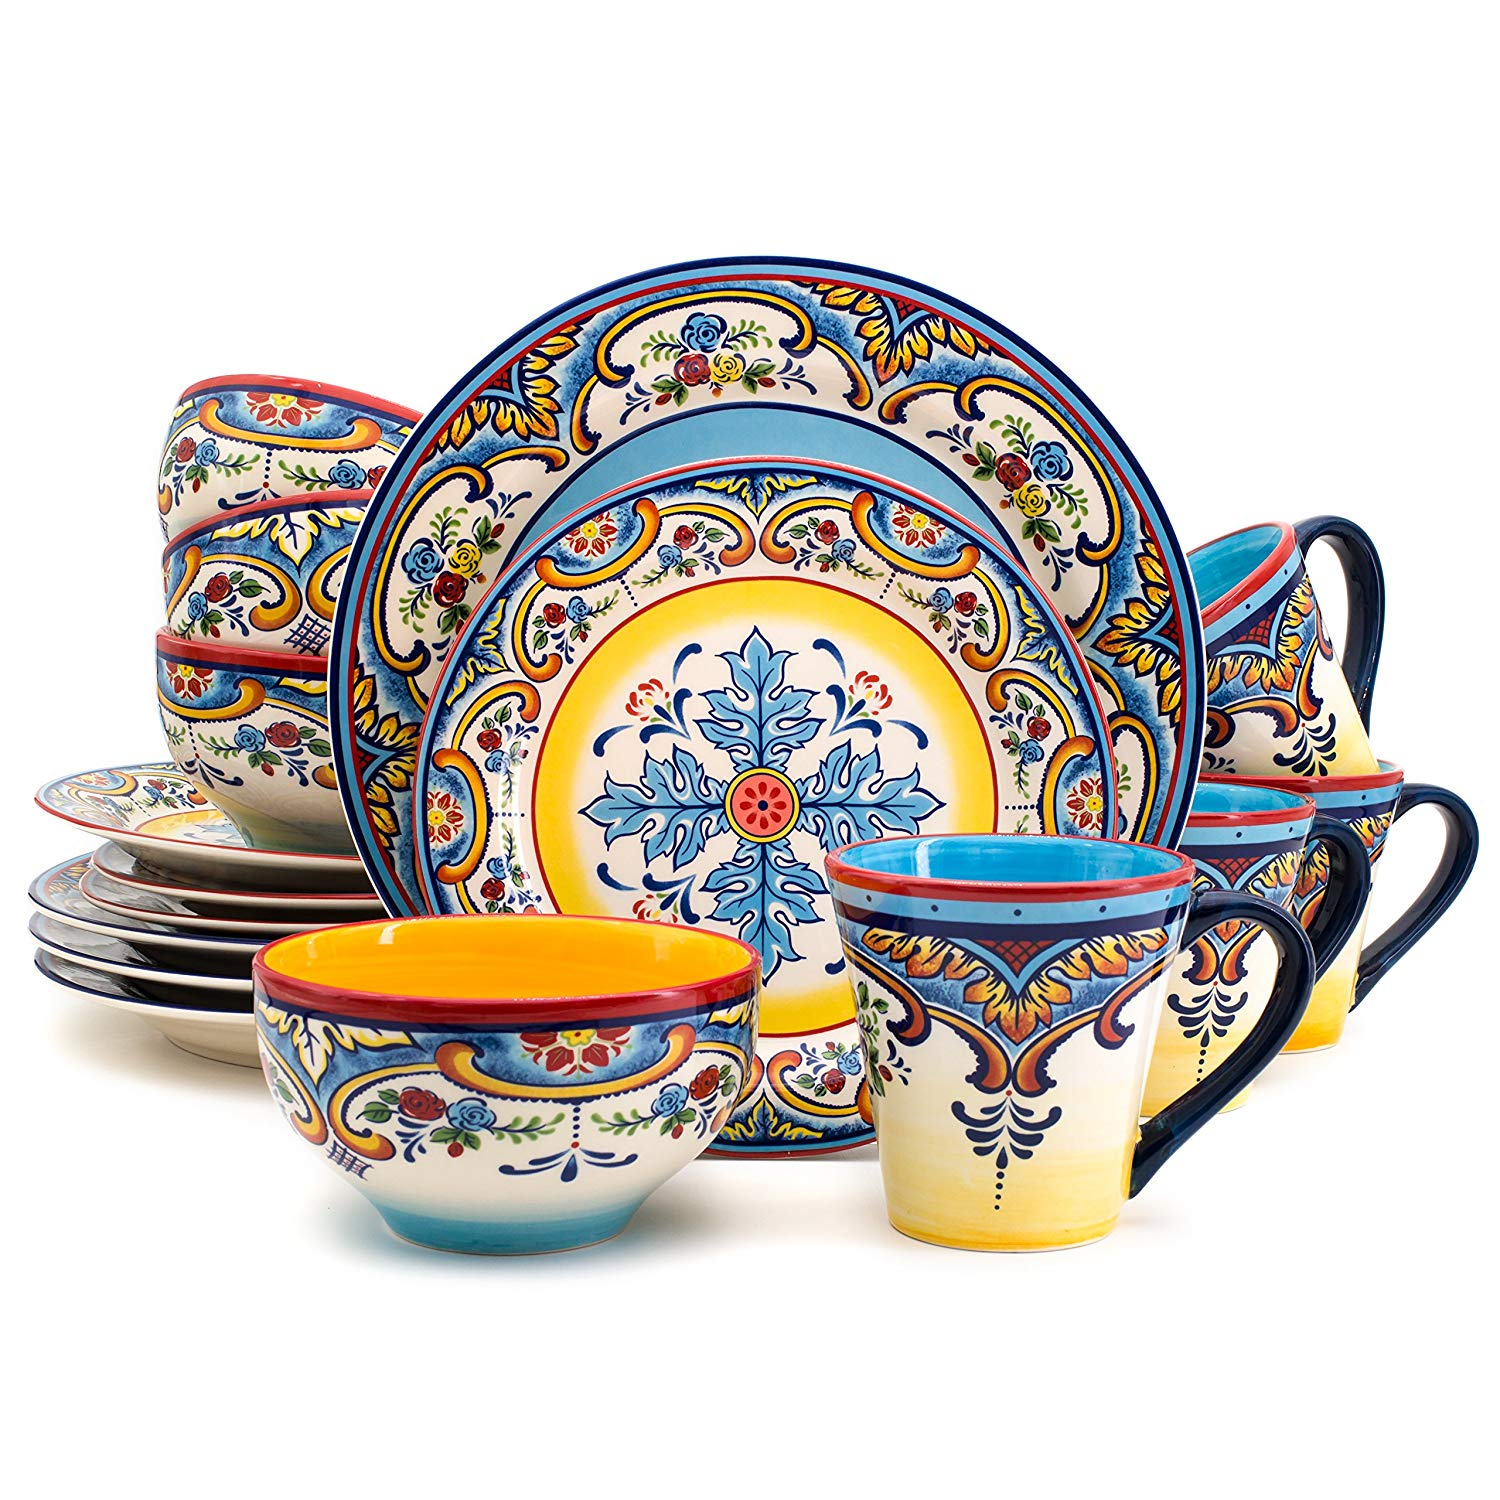 Best earthenware dinnerware sets for everyday use